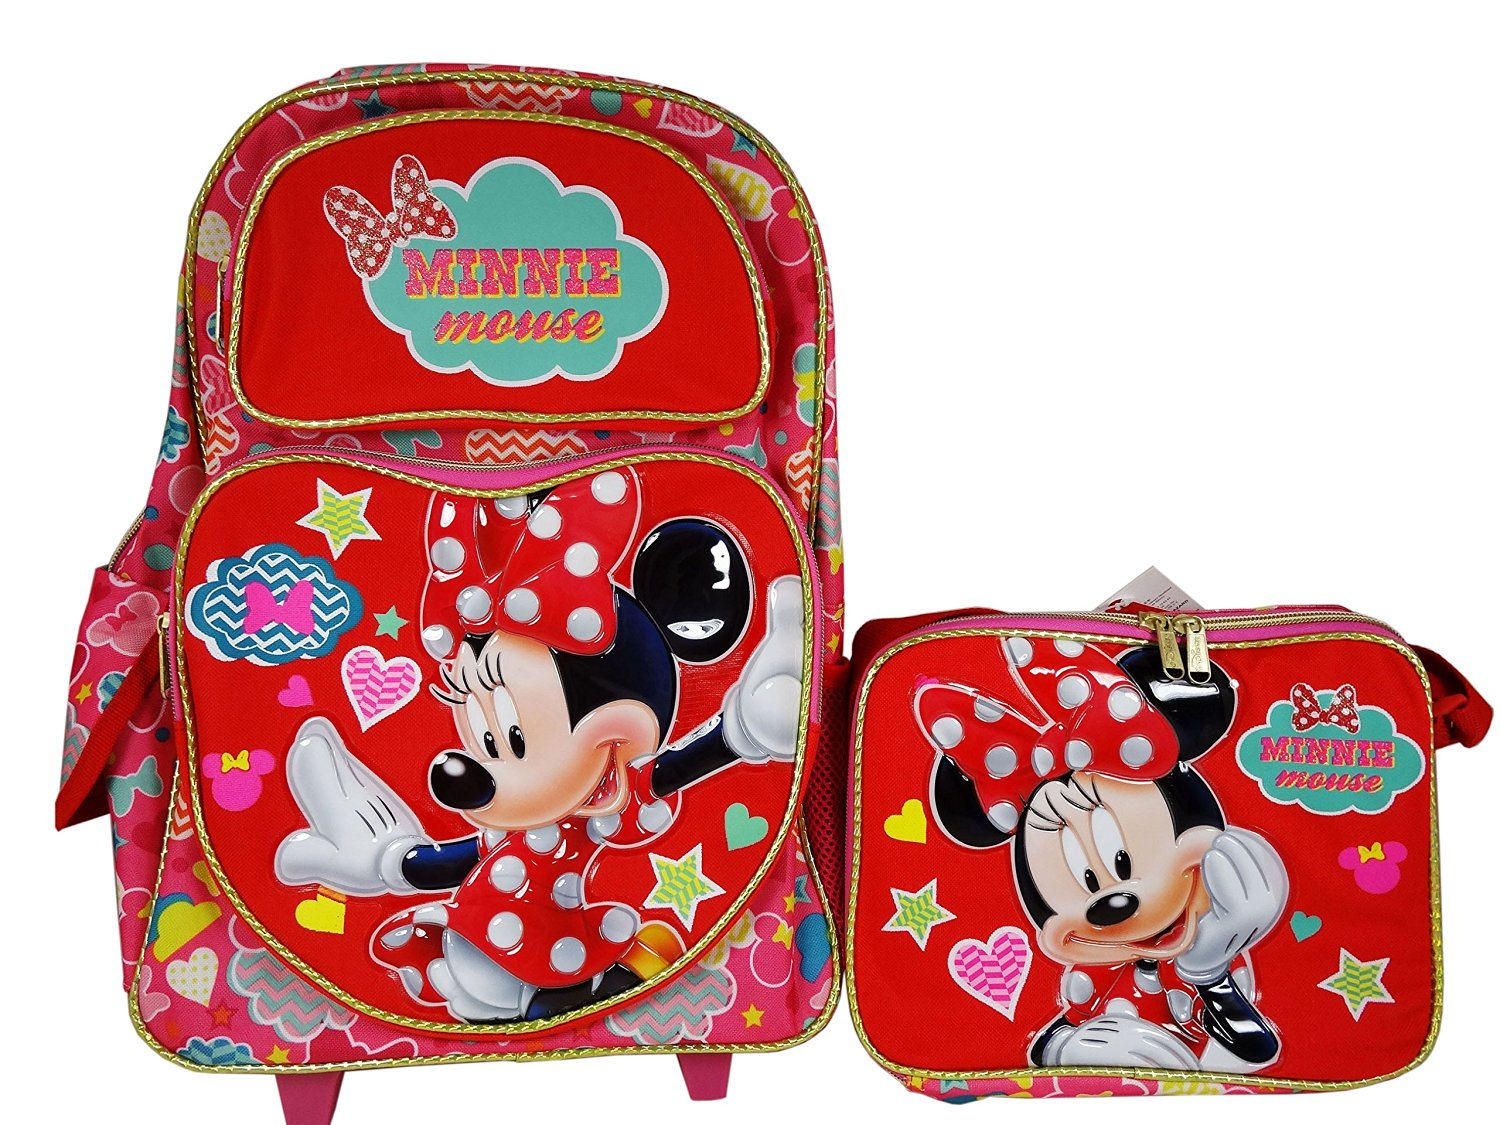 f1d402724e Get Quotations · Disney Minnie Mouse Pretty Thing Rolling Backpack and  Lunch bag Combo set.